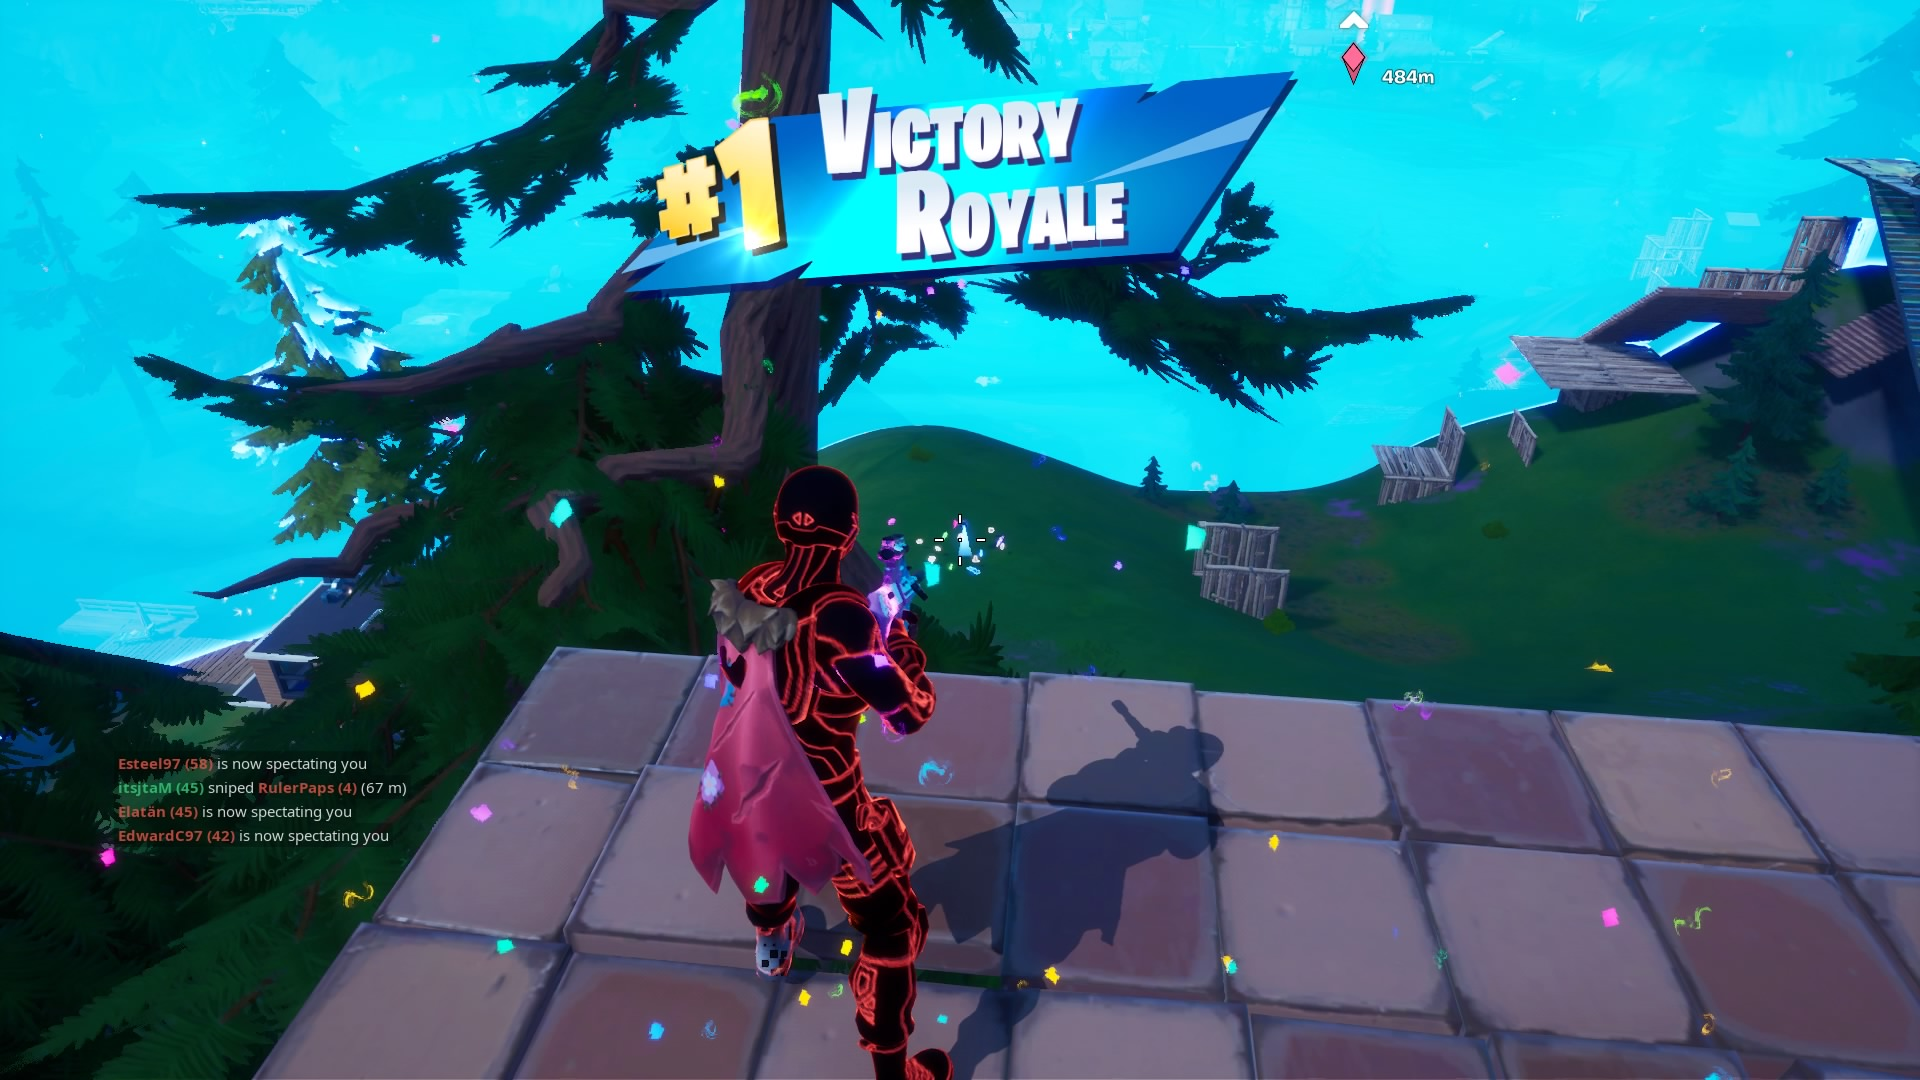 fortnite victory royale wallpaper 71181